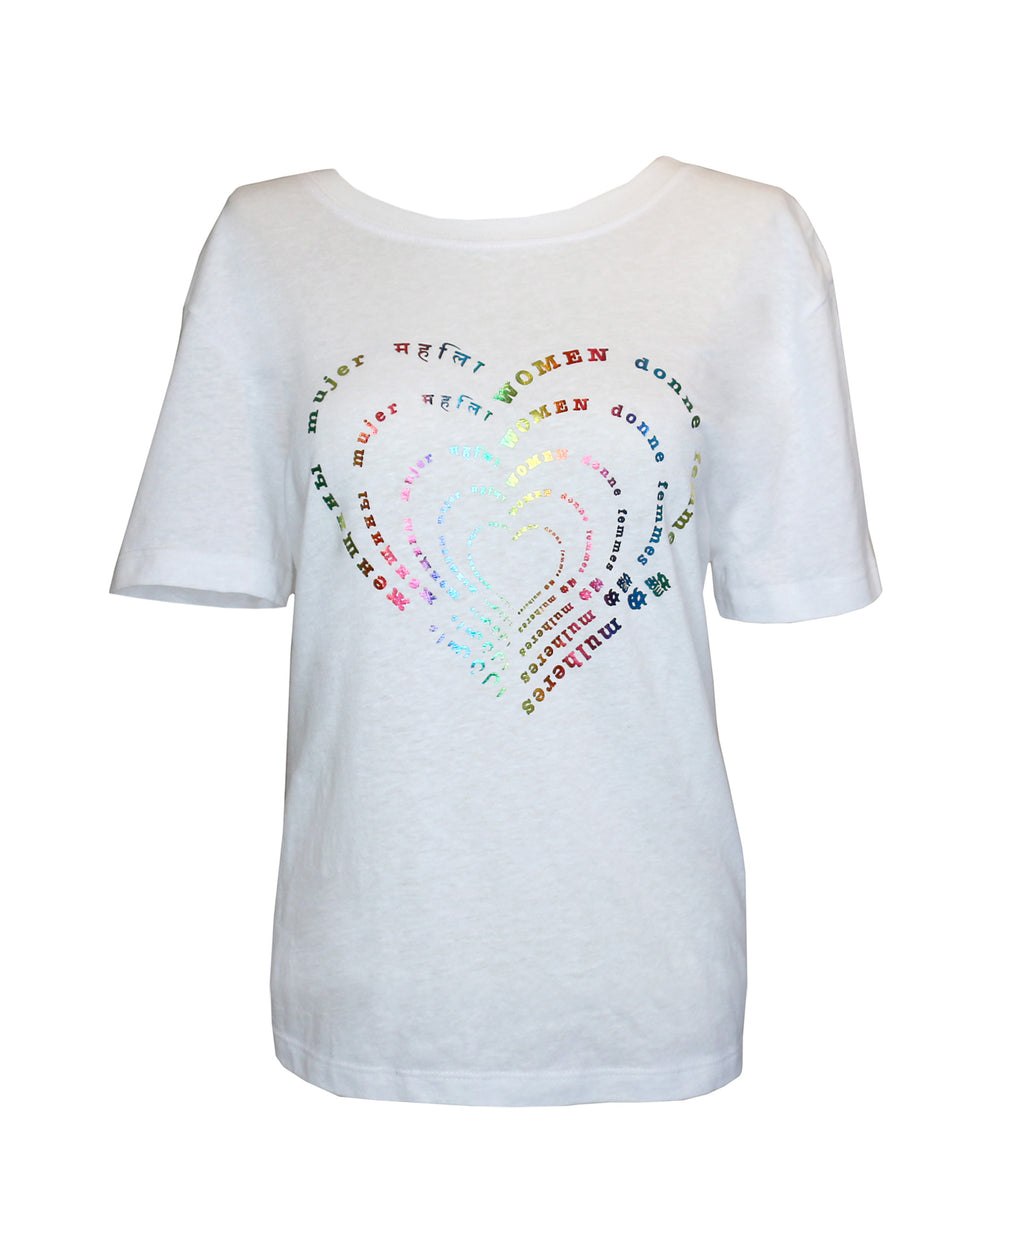 Rainbow Women T-shirt - Supports World Of Children | Rainbow Women T-shirt - Supports World Of Children